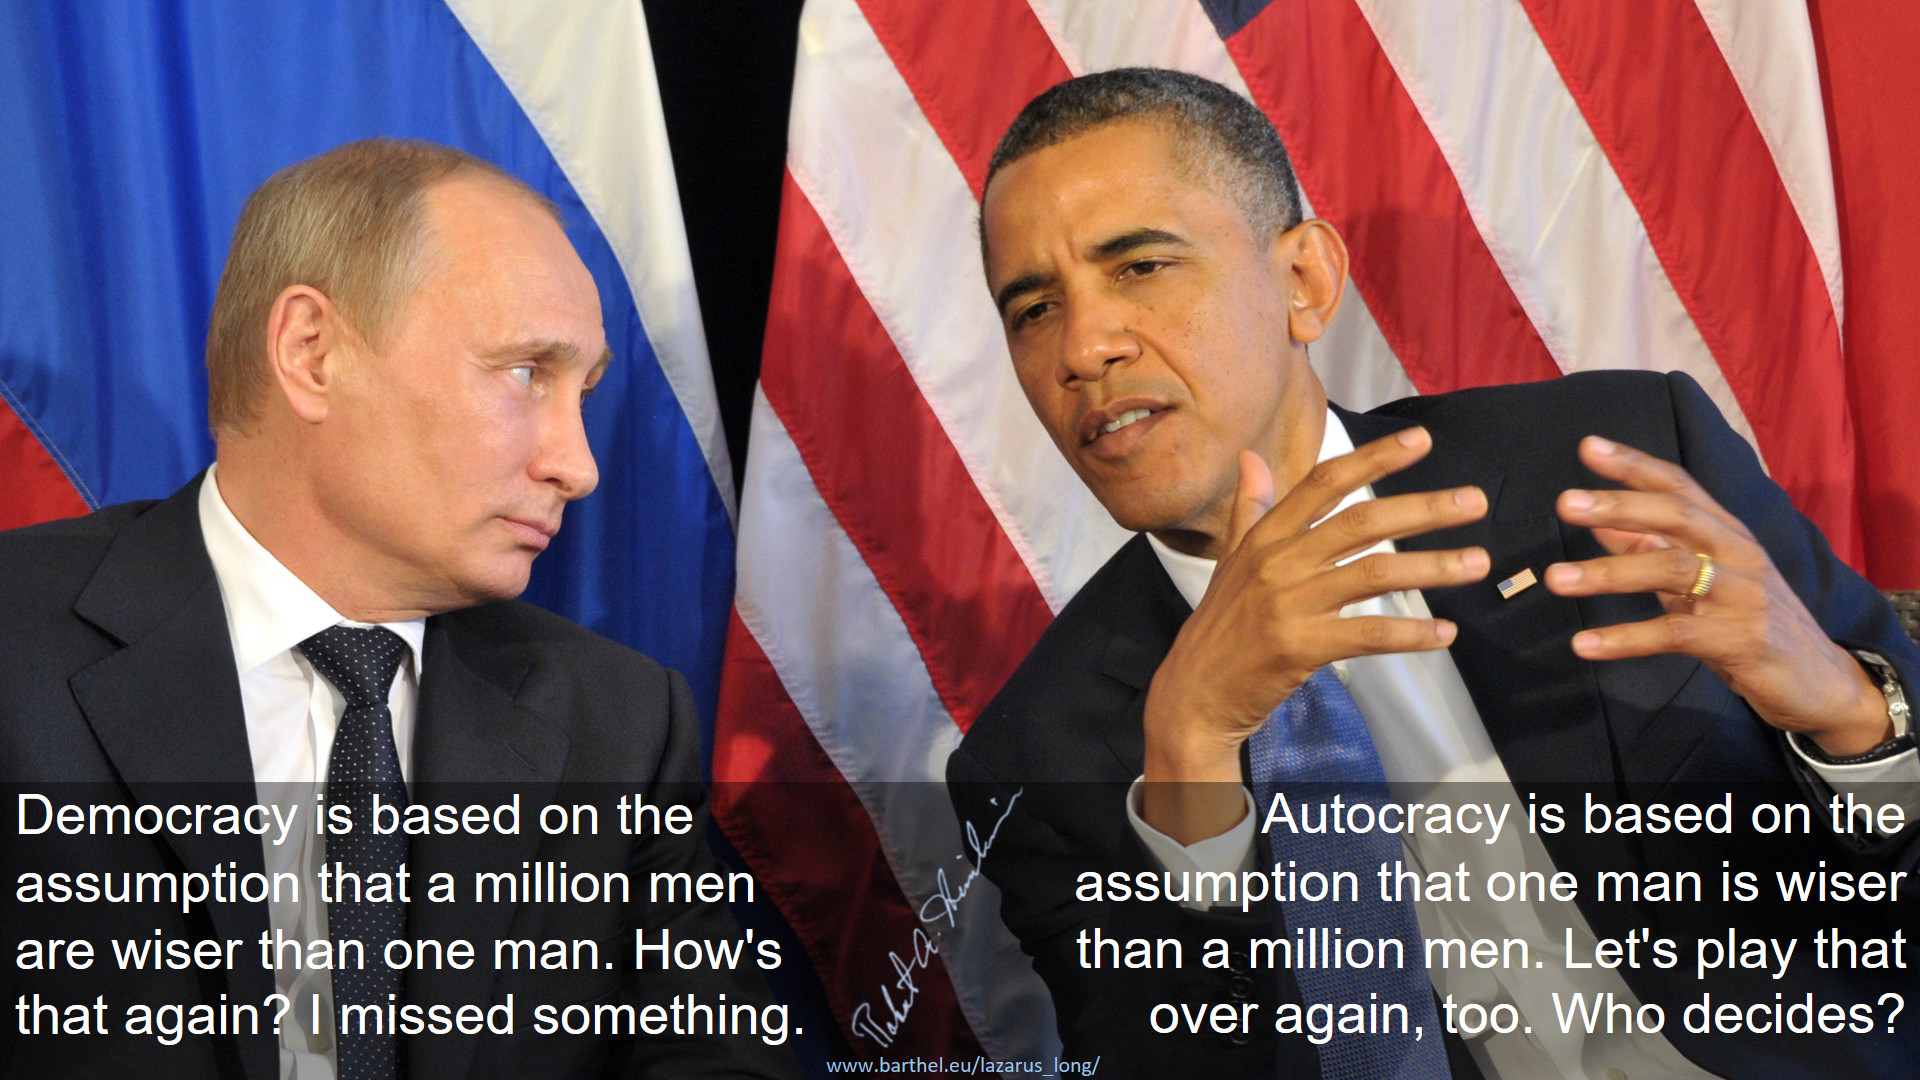 Democracy vs. Autocracy